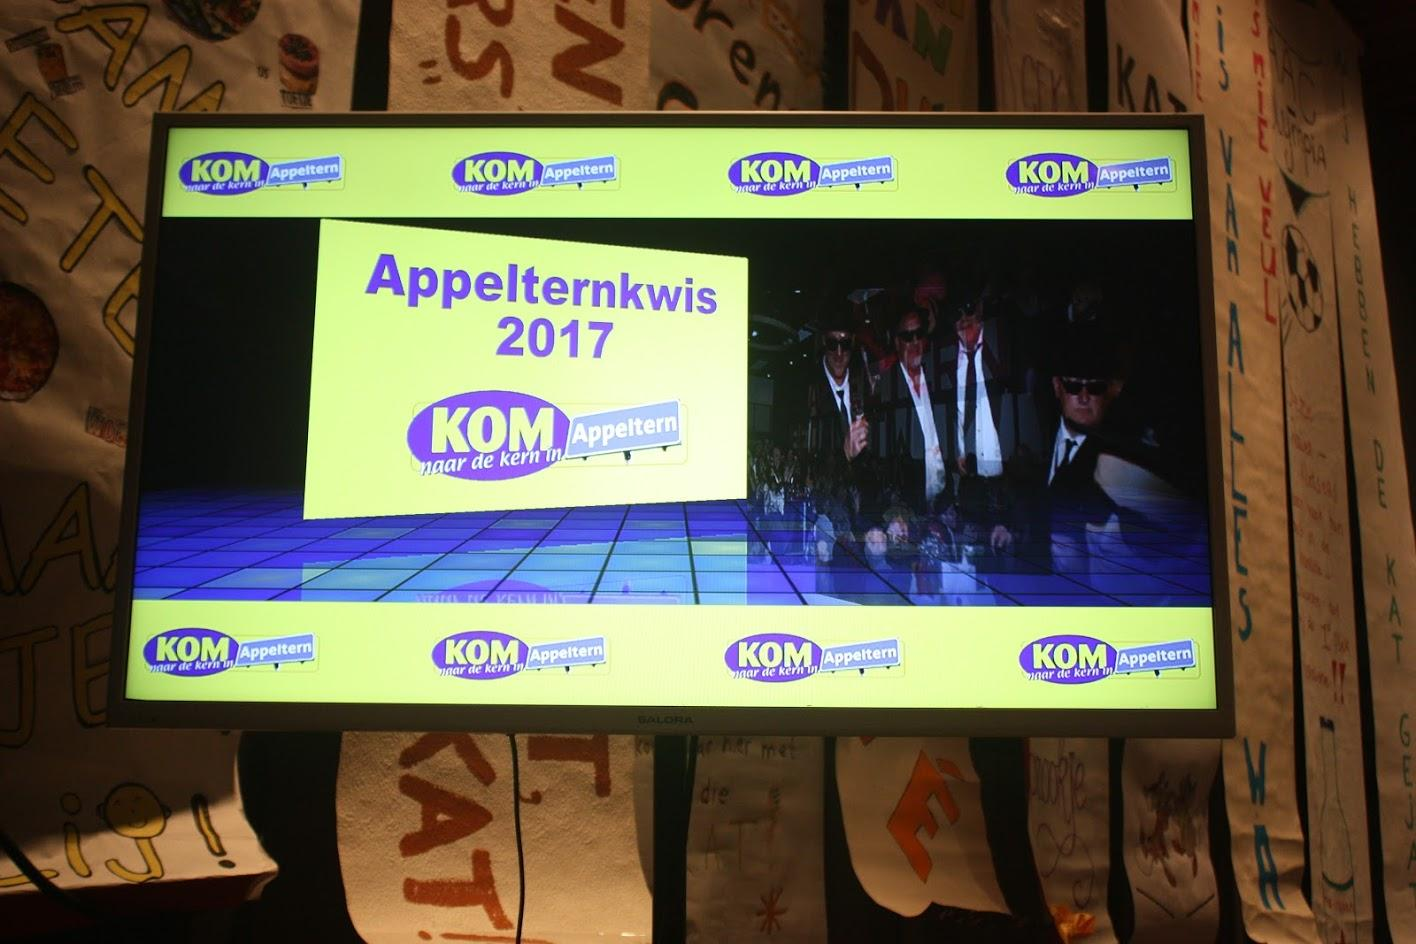 appelternkwis 2017